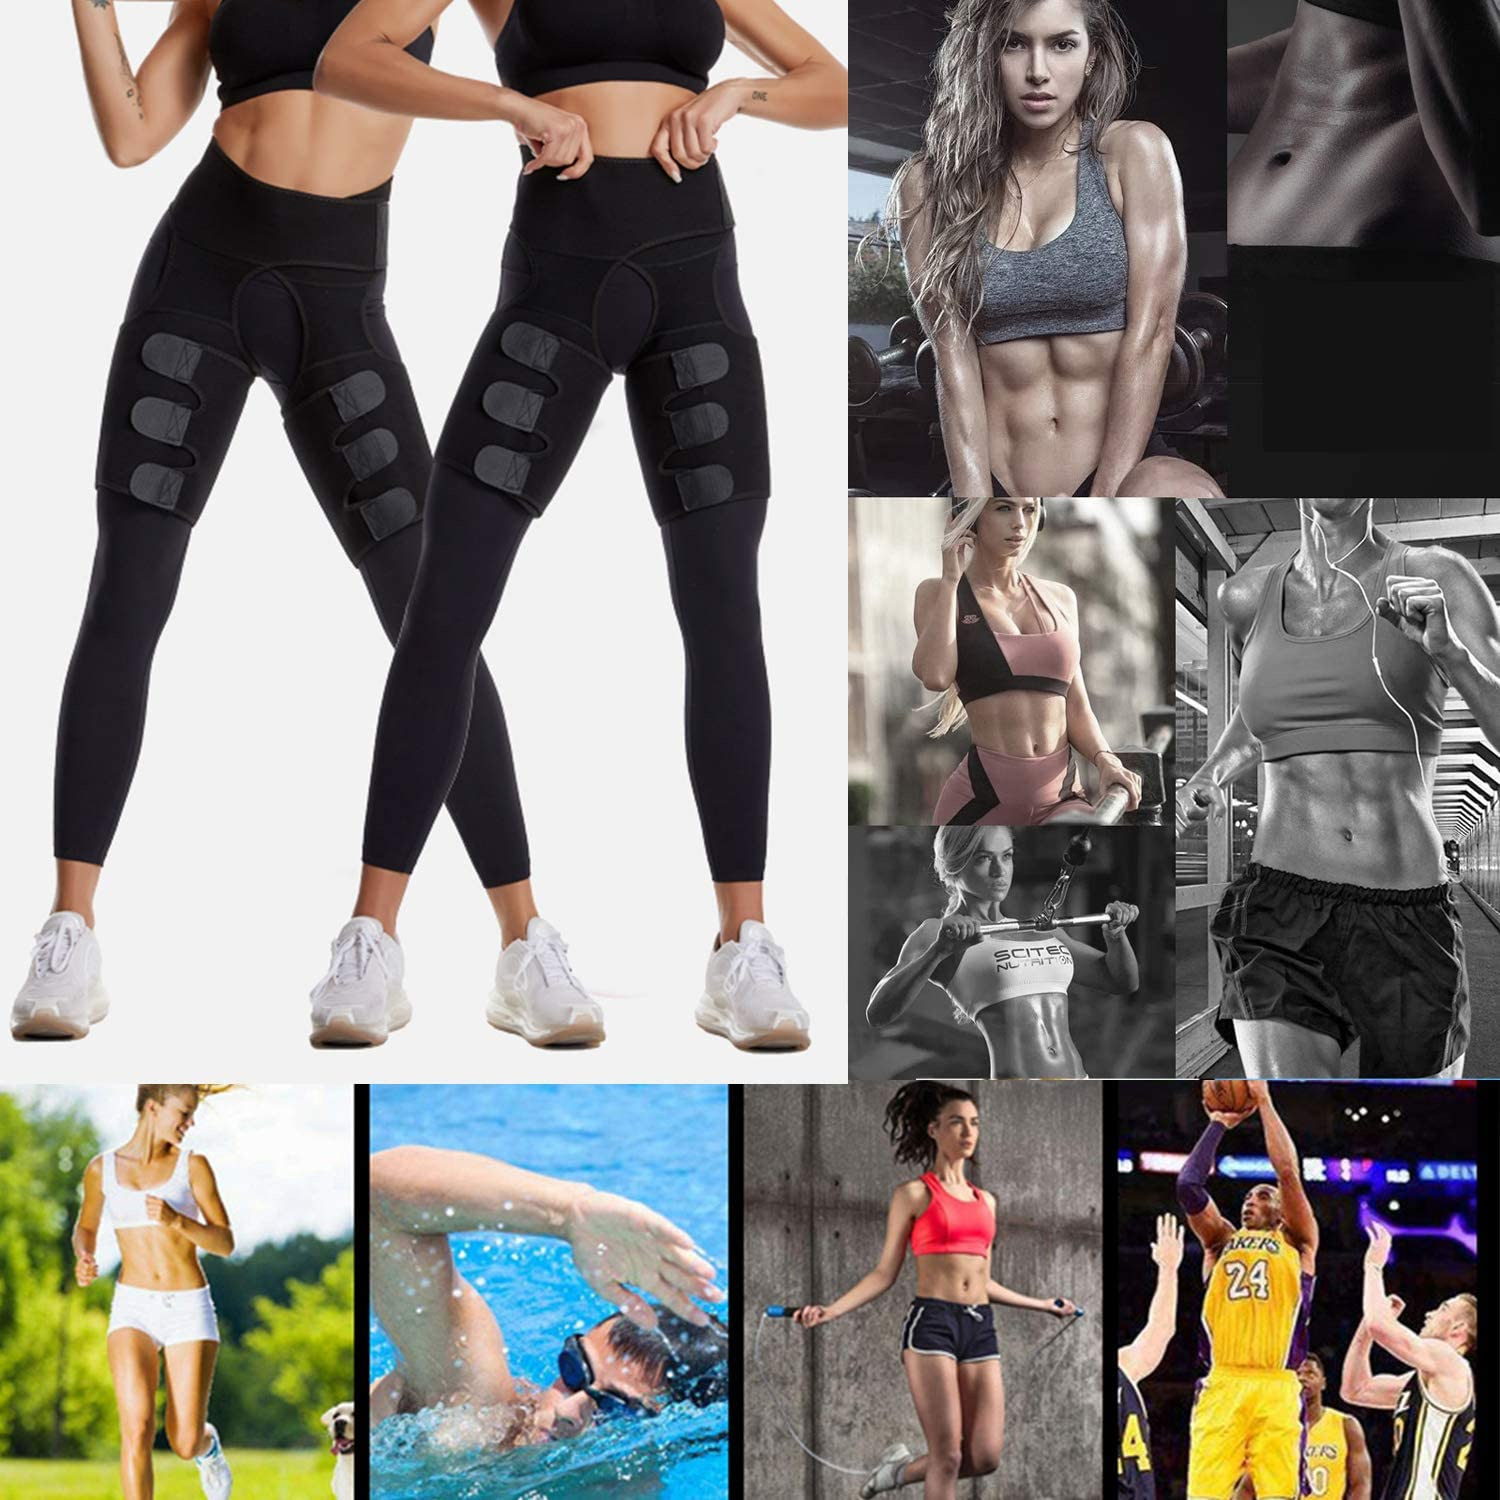 2020 Updated Version 3-in-1 Waist Trainer Thigh Trimmers Hip Enhancer Yoga Running Fitness Weight Loss Butt Lifter Trainer Slimming Support for Women